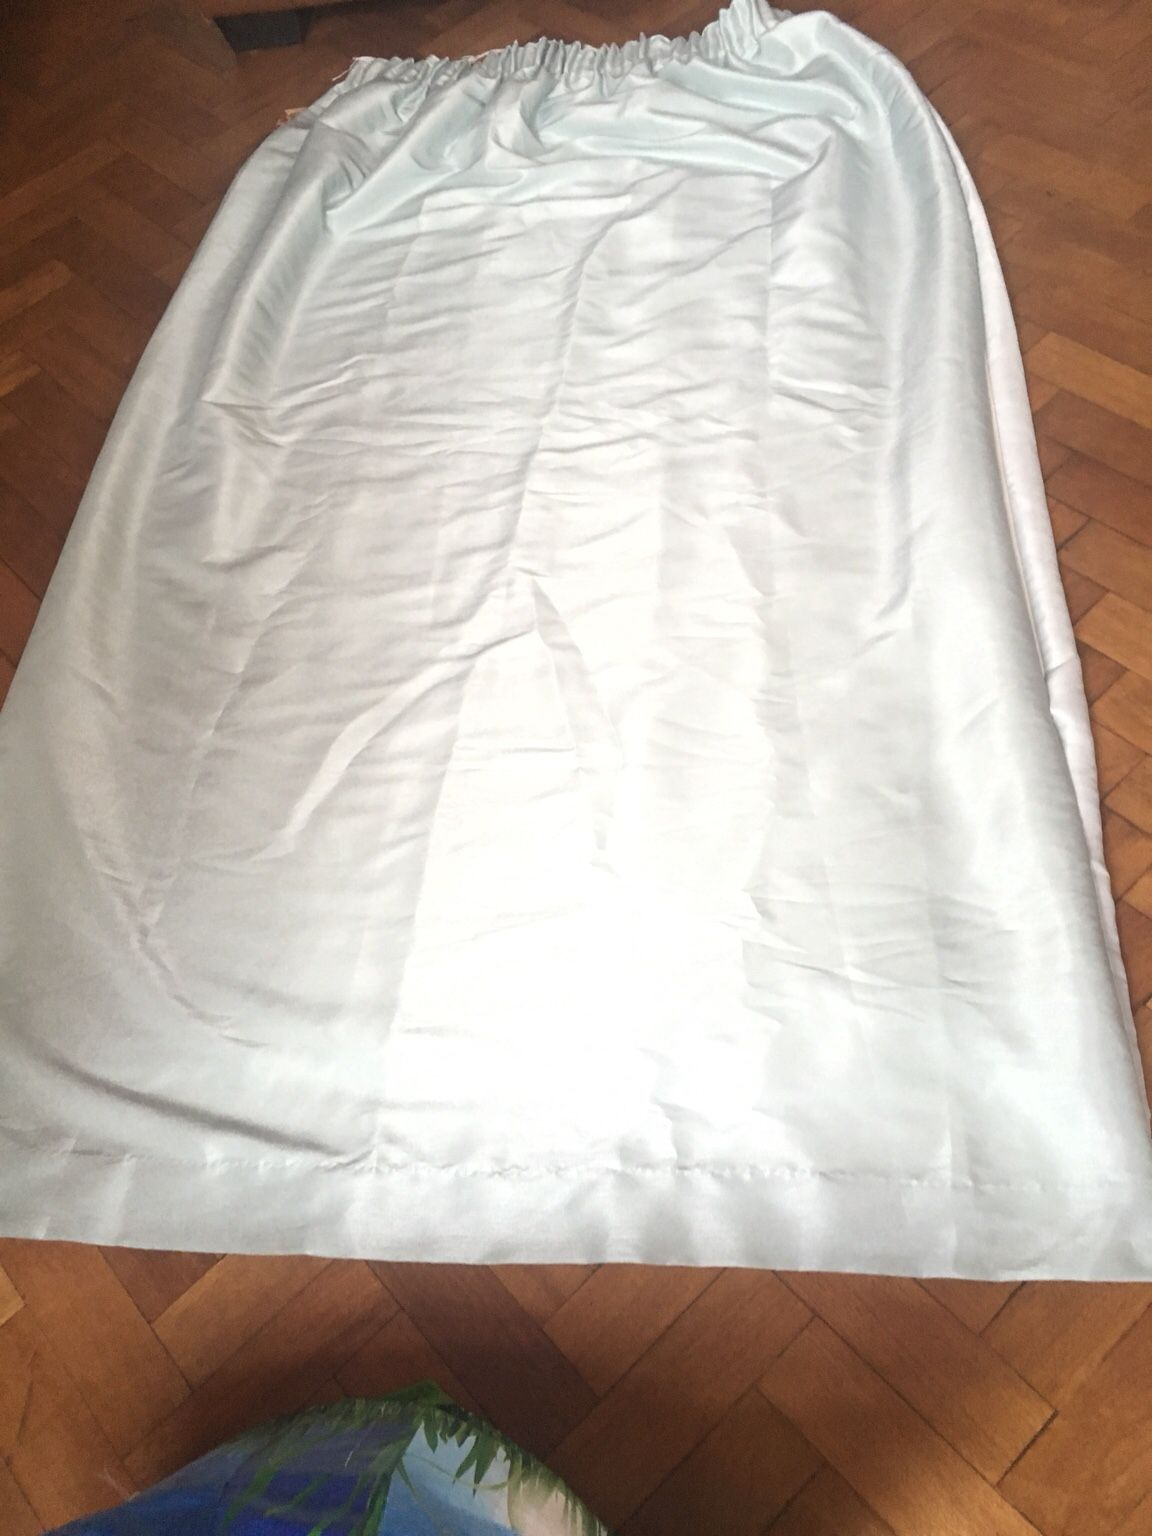 Https://en.shpock/i/w92Sx66_Y3Ftudbk/ 2018 11 03T13:21:42+ Within Bailey Linen Flare Arm Wing Skirted Swivel Gliders (Photo 19 of 20)